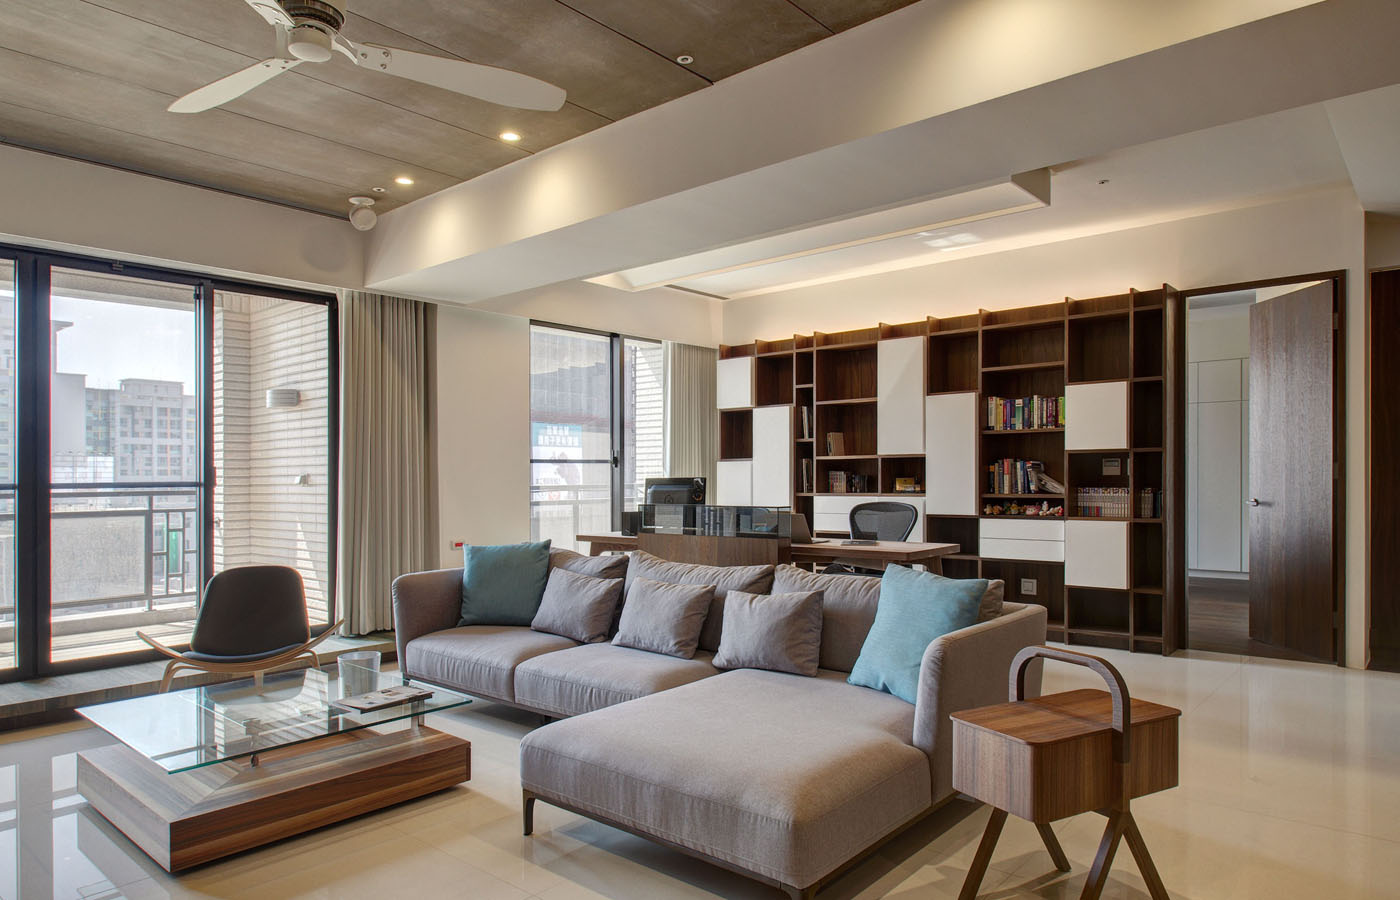 Modern apartment designs by phase6 design studio for Modern apartment design plans